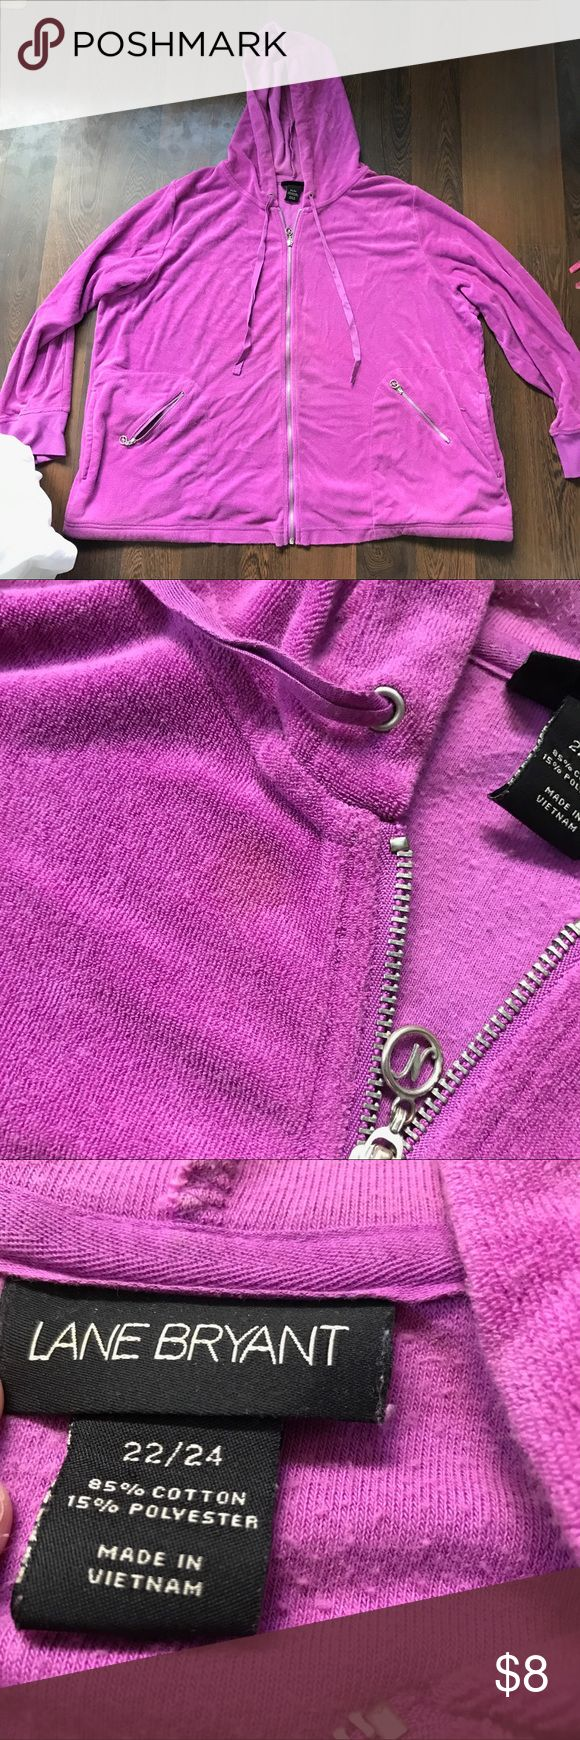 Lane Bryant jacket Orchid shade of purple, Lane Bryant women's jacket, good used condition, zip up front with drawstring hood, side pockets for hands and then little zipper pockets on those! Lane Bryant Jackets & Coats